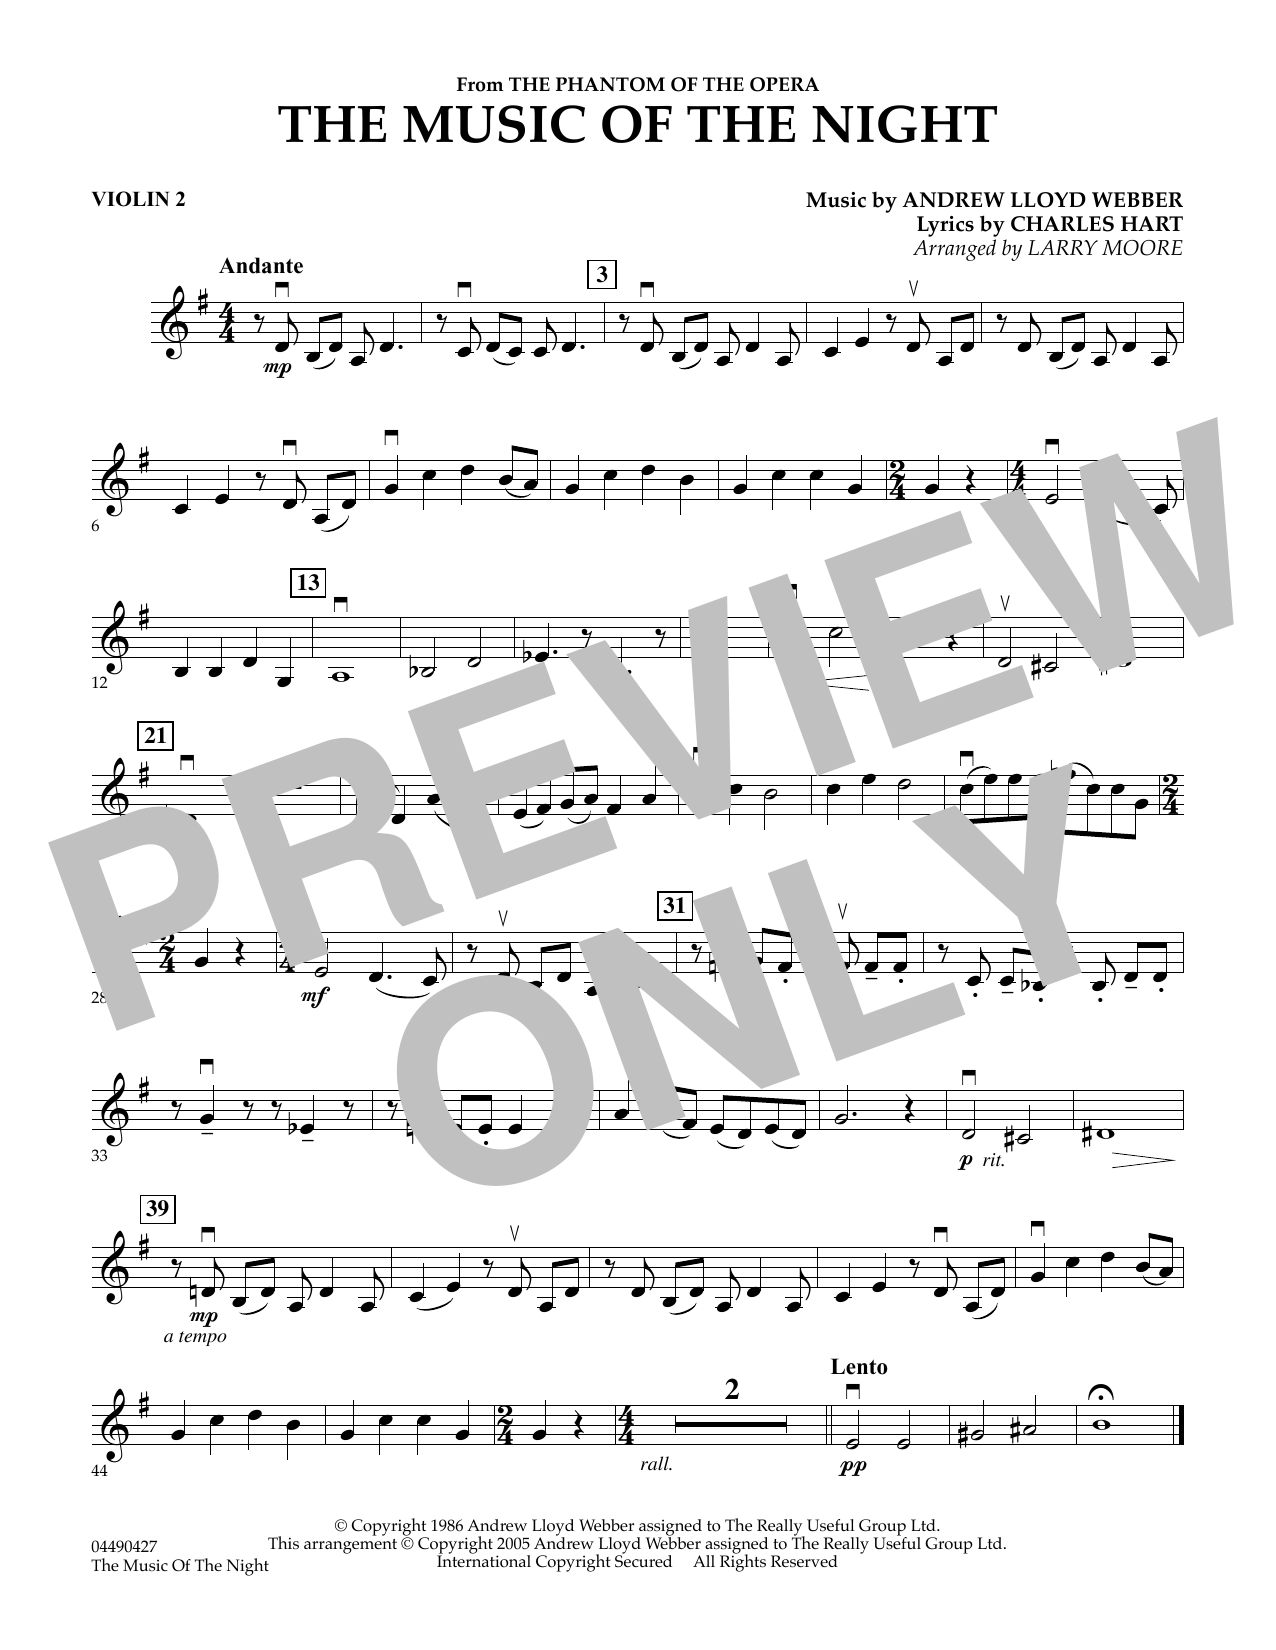 Larry Moore The Music of the Night (from The Phantom of the Opera) - Violin 2 sheet music preview music notes and score for String Quartet including 1 page(s)